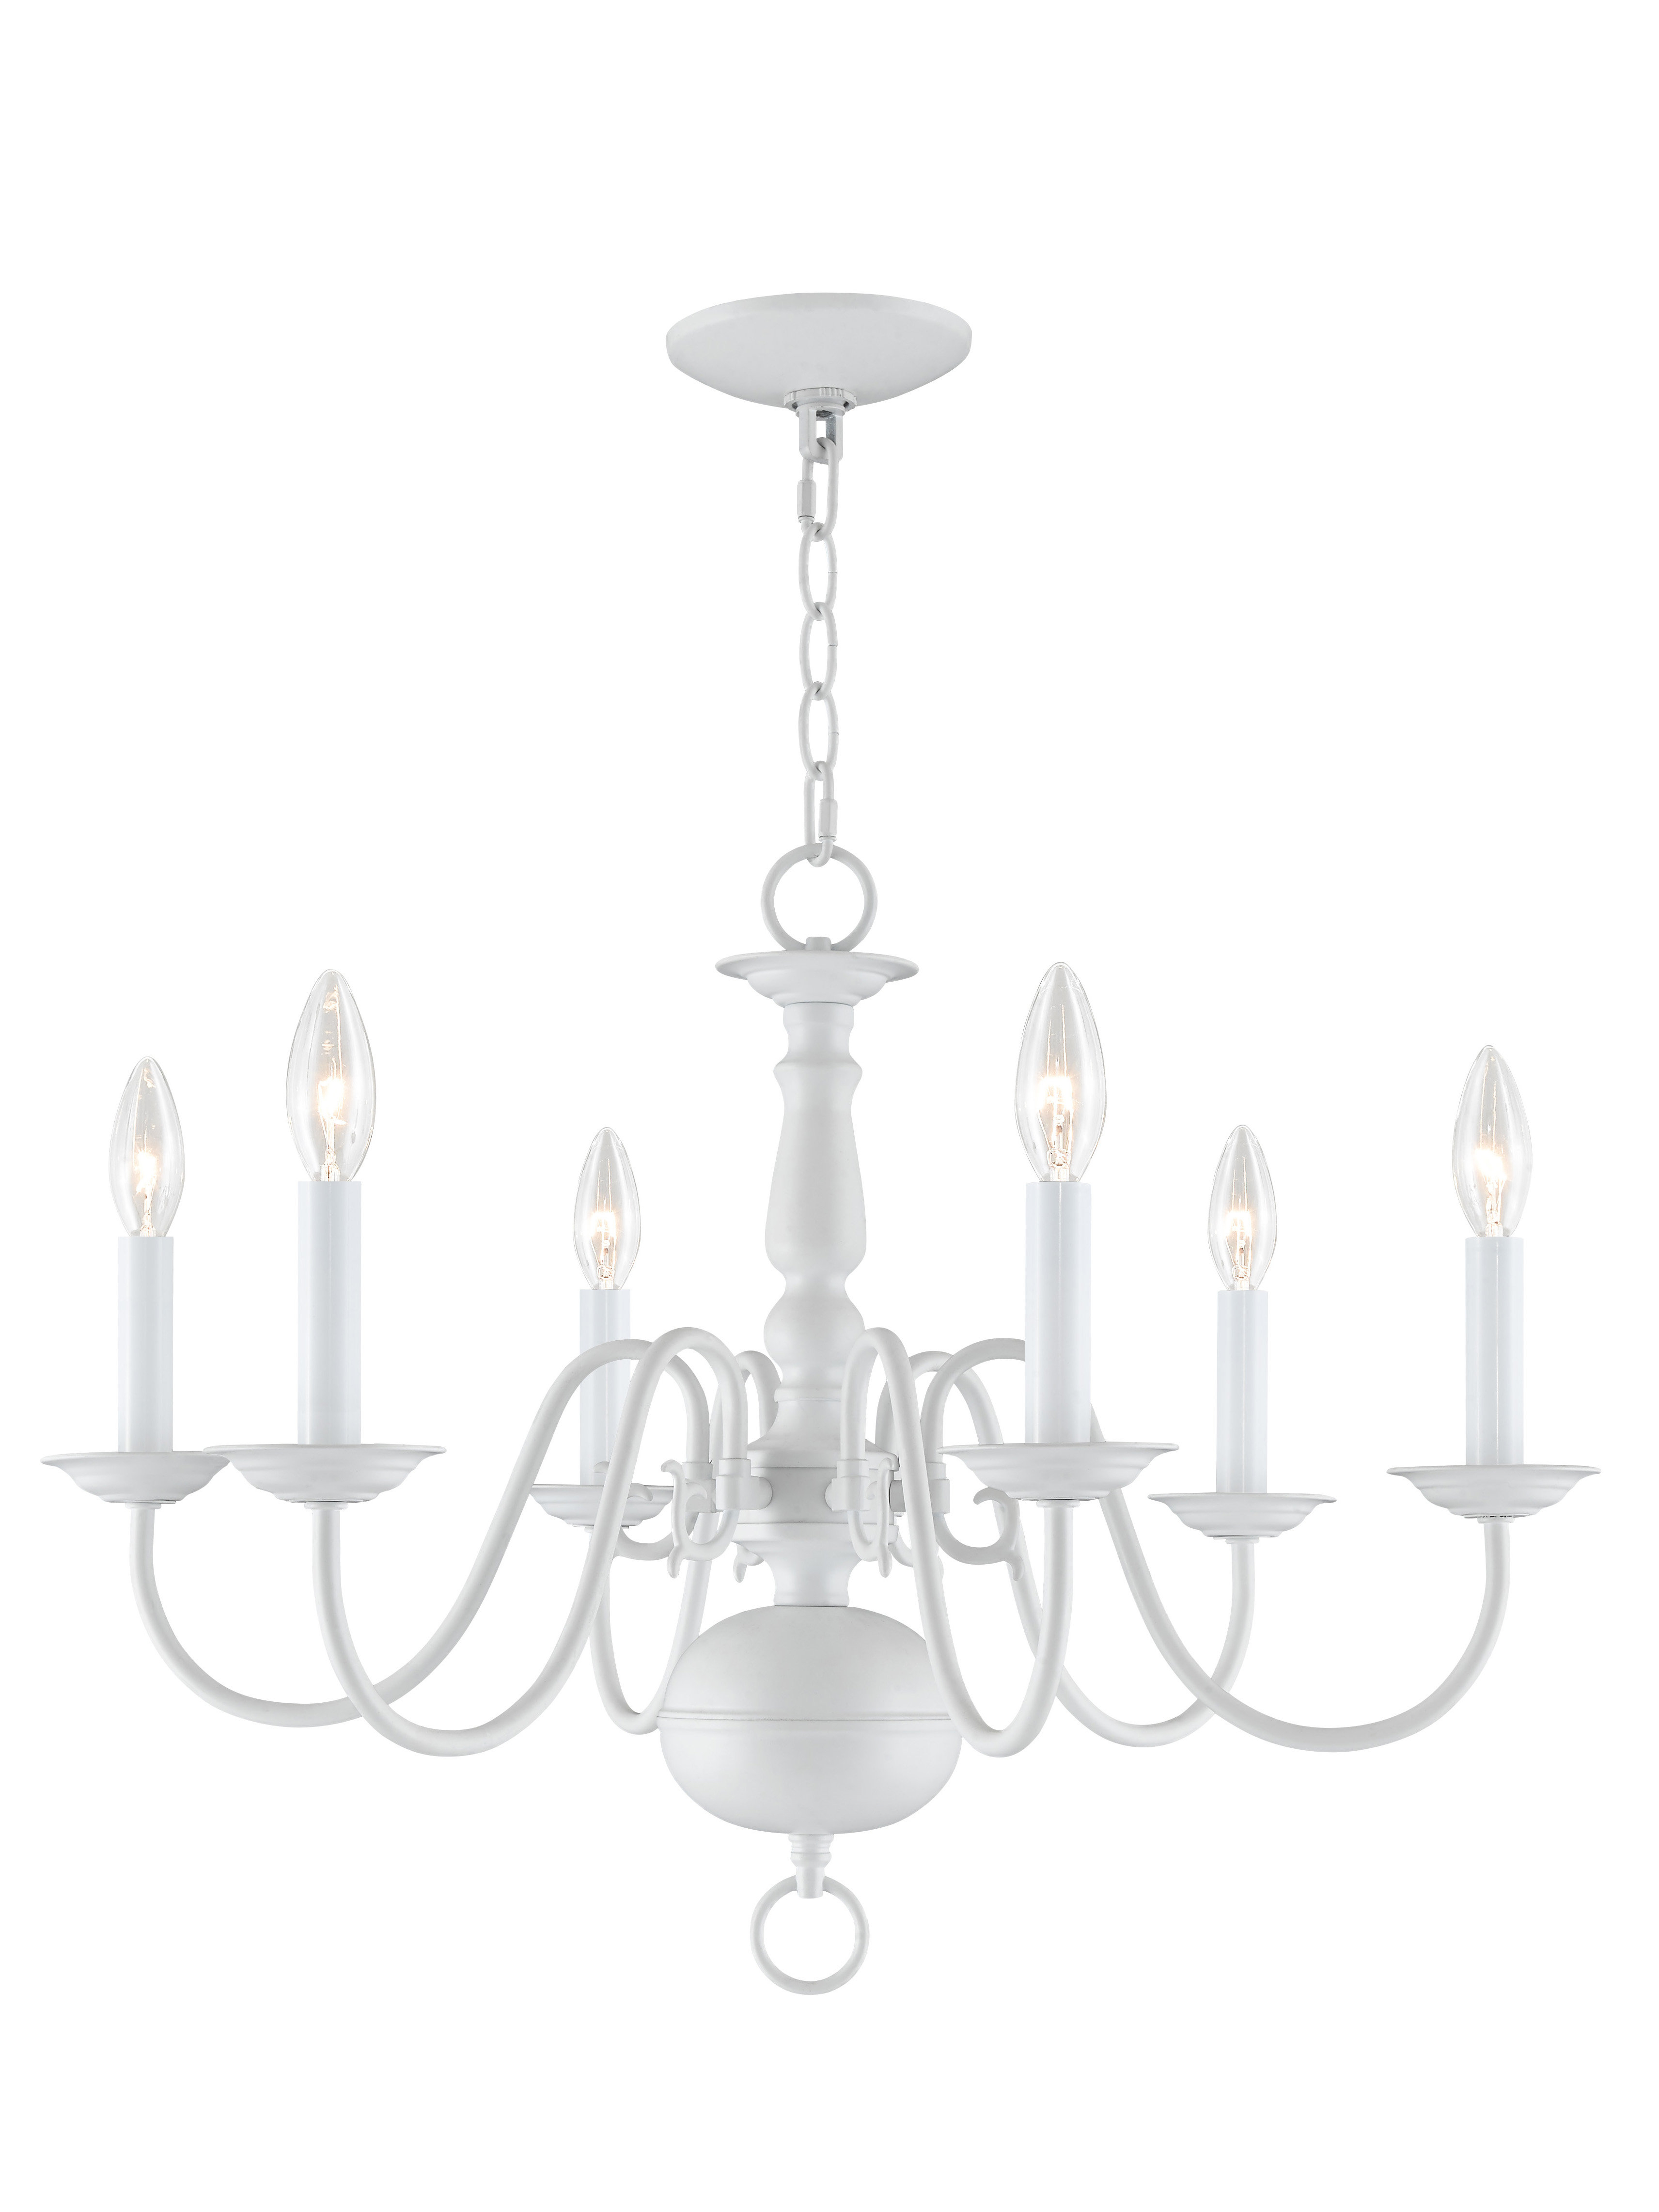 Favorite Three Posts Allensby 6 Light Candle Style Chandelier Intended For Diaz 6 Light Candle Style Chandeliers (View 16 of 25)